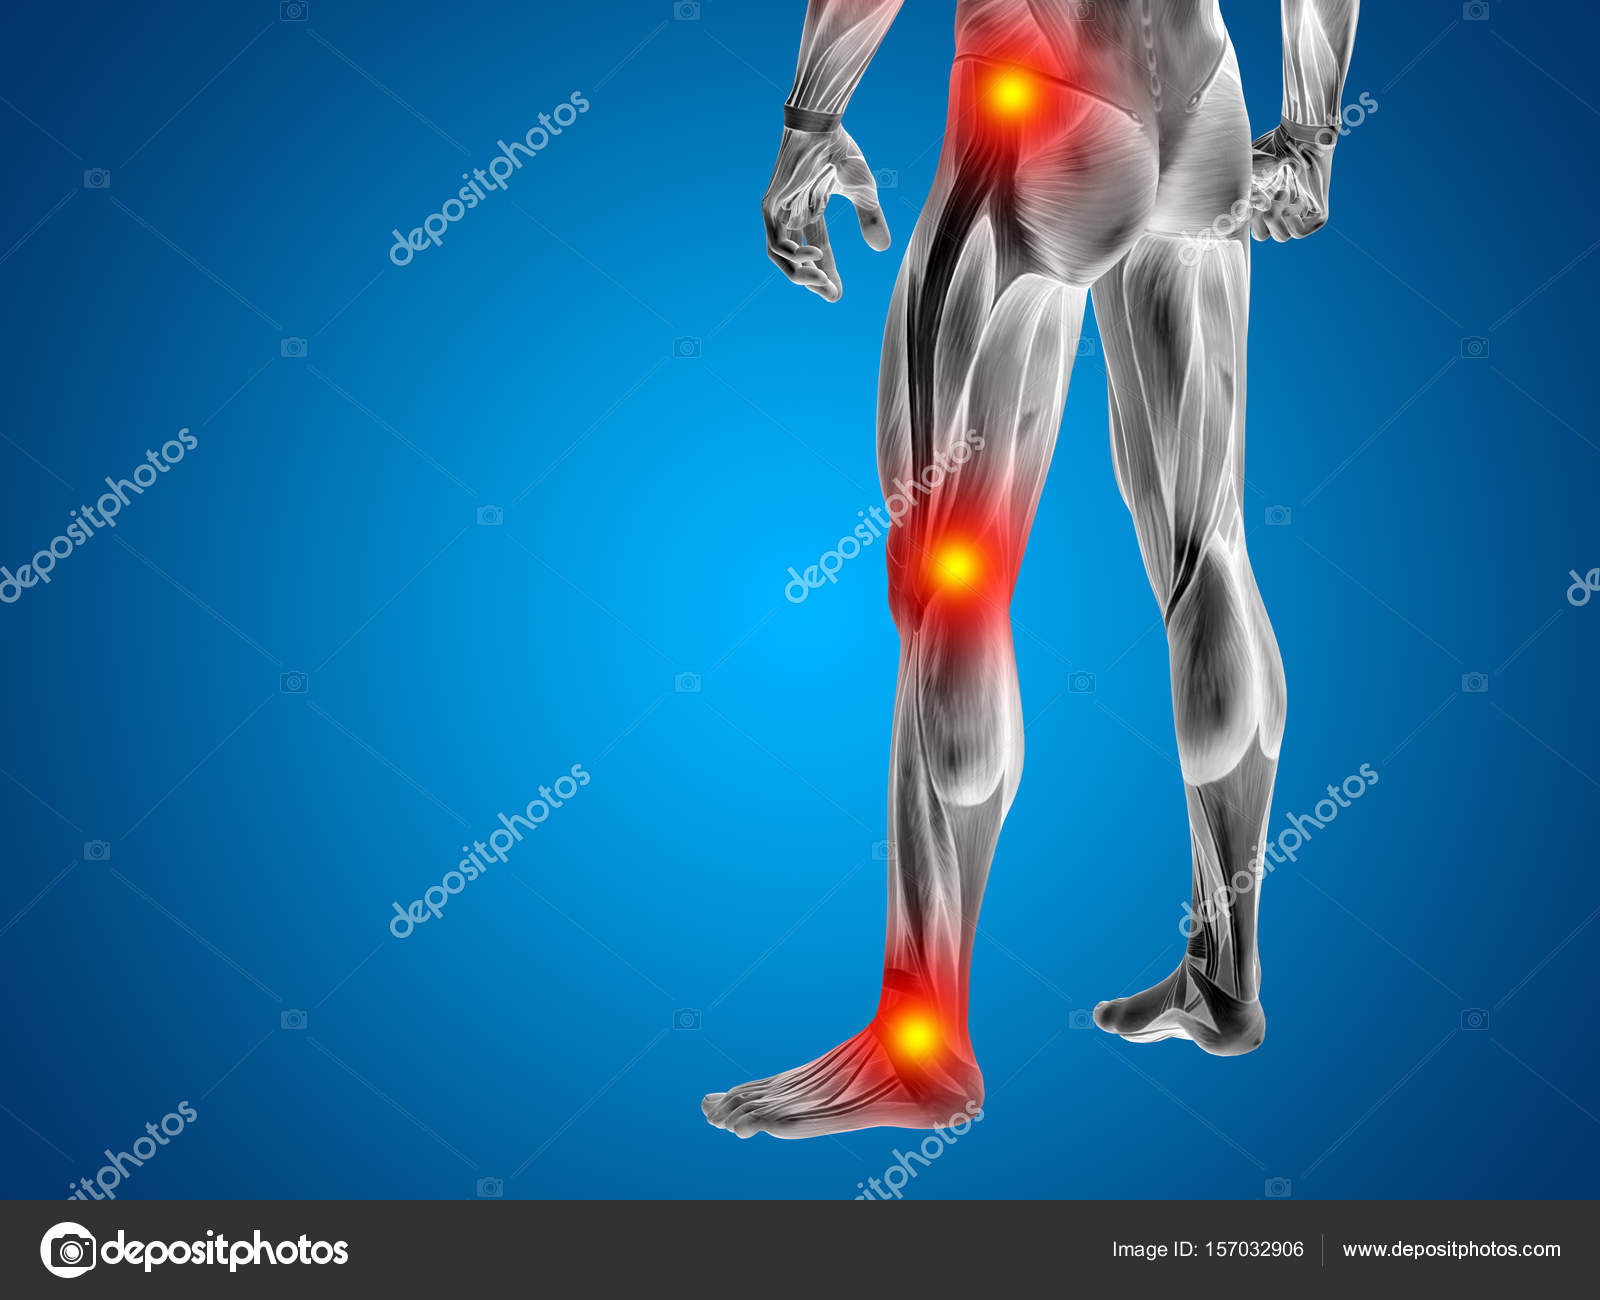 Anatomy Lower Body With Articular Pain Stock Photo Design36